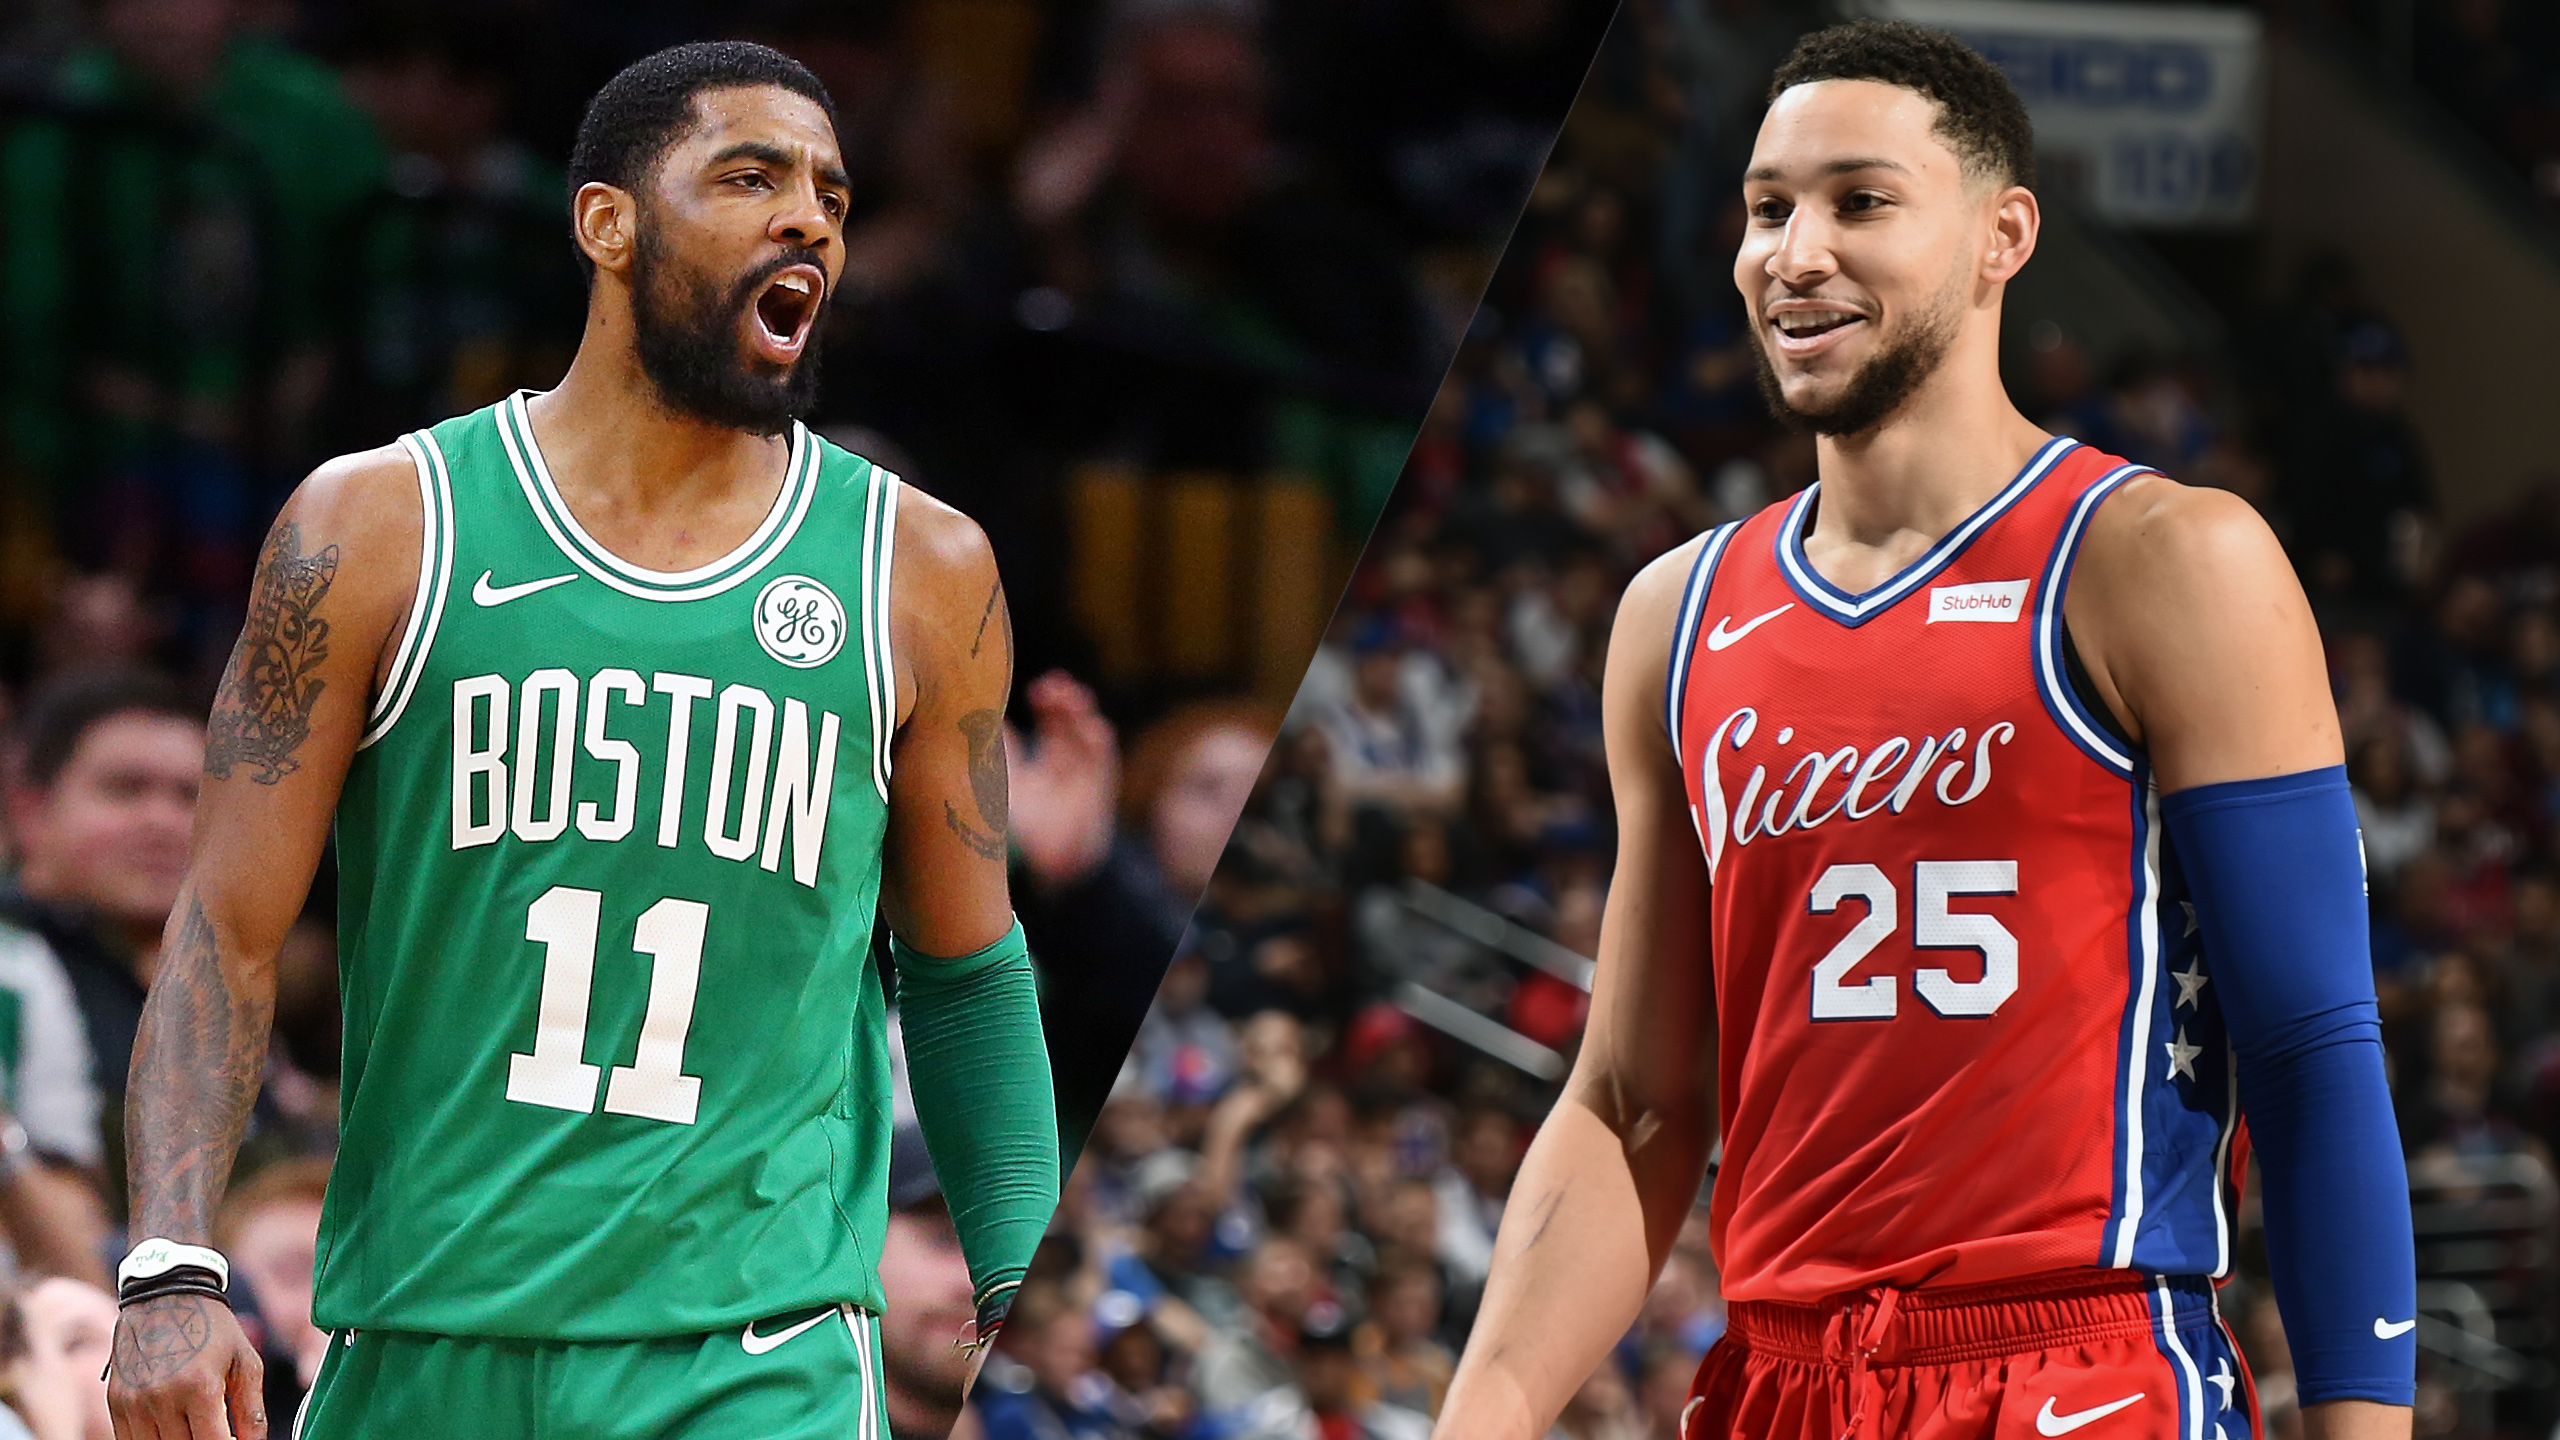 Boston Celtics vs. Philadelphia 76ers (re-air)